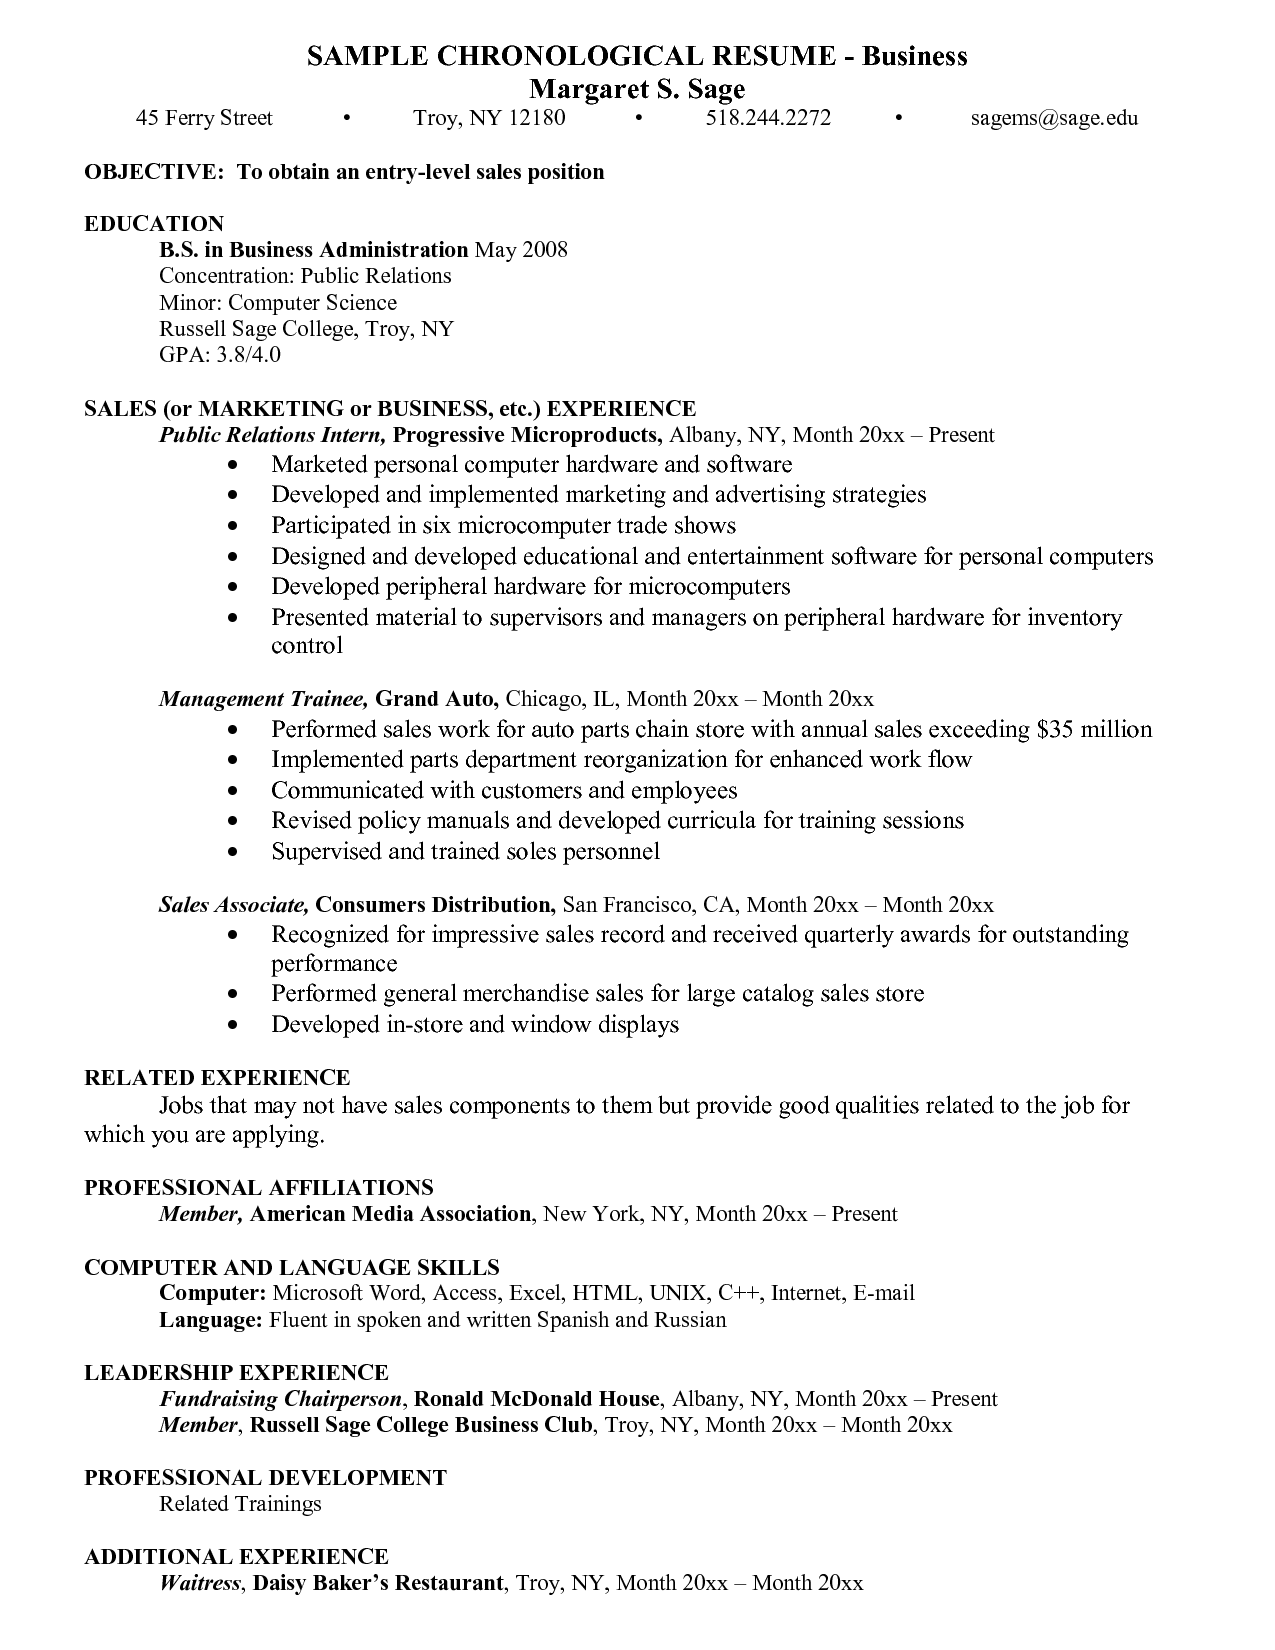 Resume Business Objective For Sales Affiliations Professional Organization